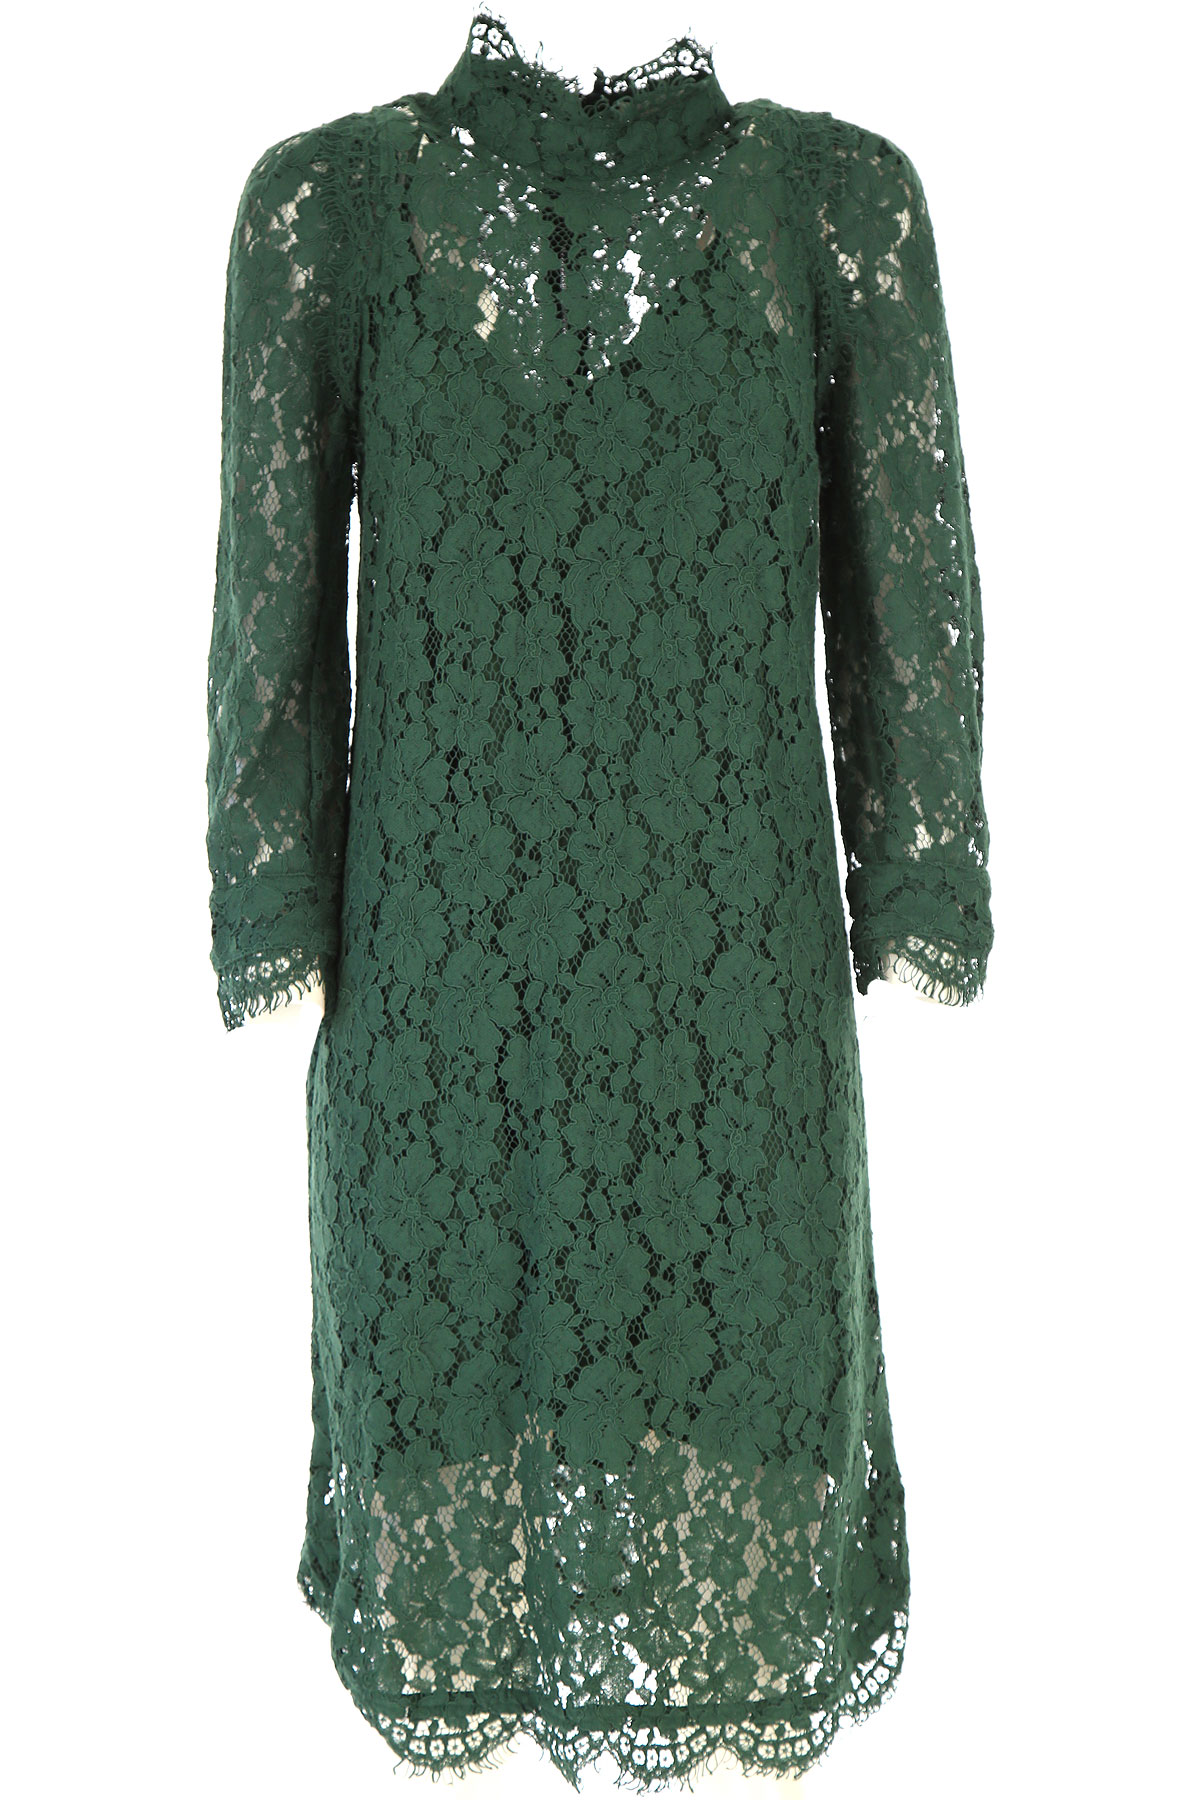 Zadig & Voltaire Dress for Women, Evening Cocktail Party On Sale, Forest Green, Cotton, 2019, 4 6